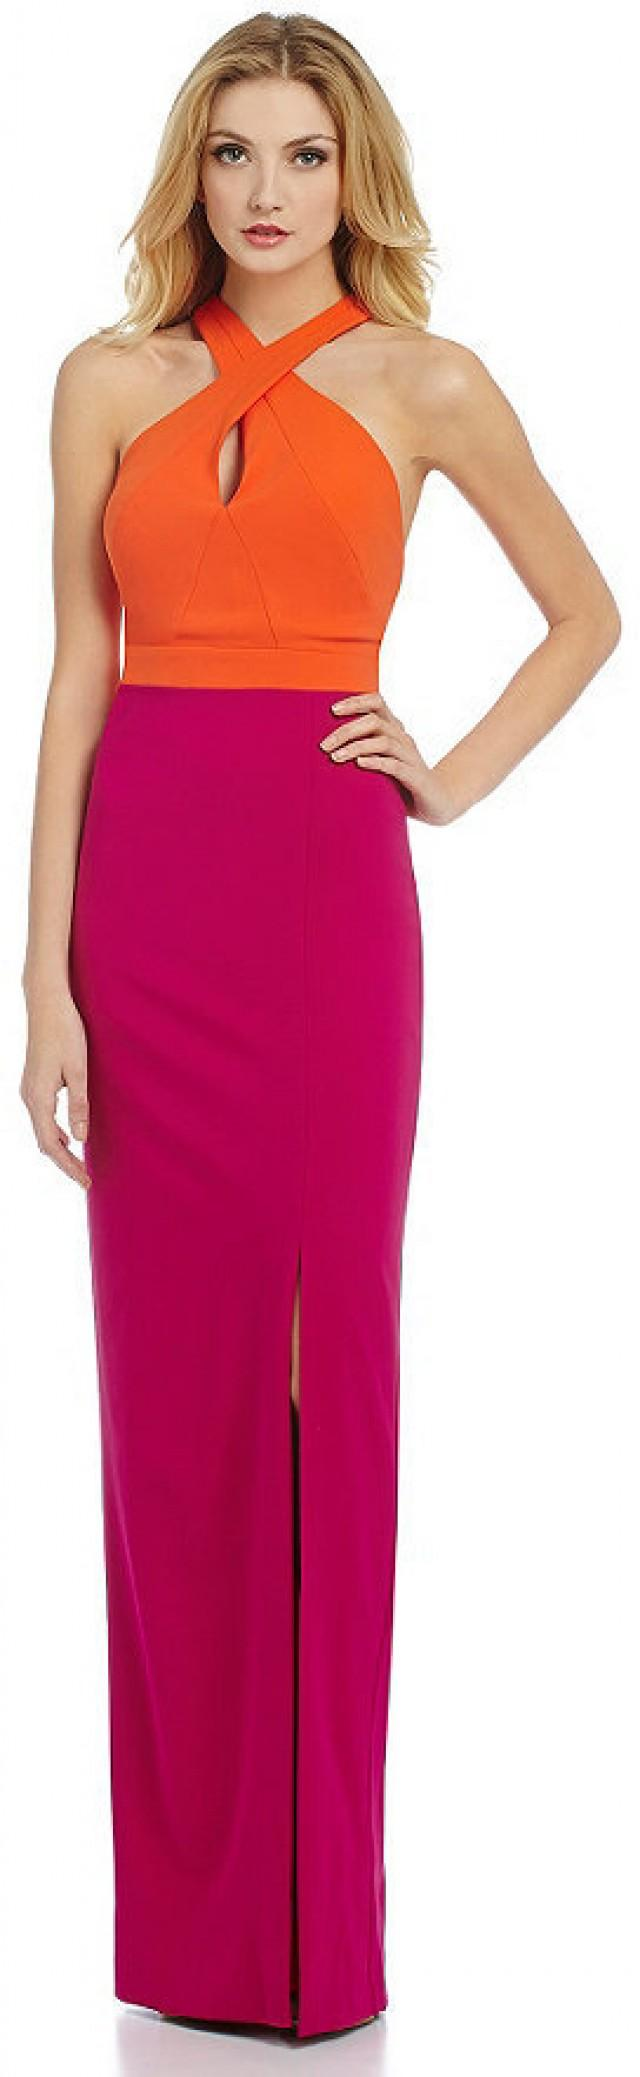 Nicole Miller Collection Cece Techy Crepe Halter Gown #2353915 ...